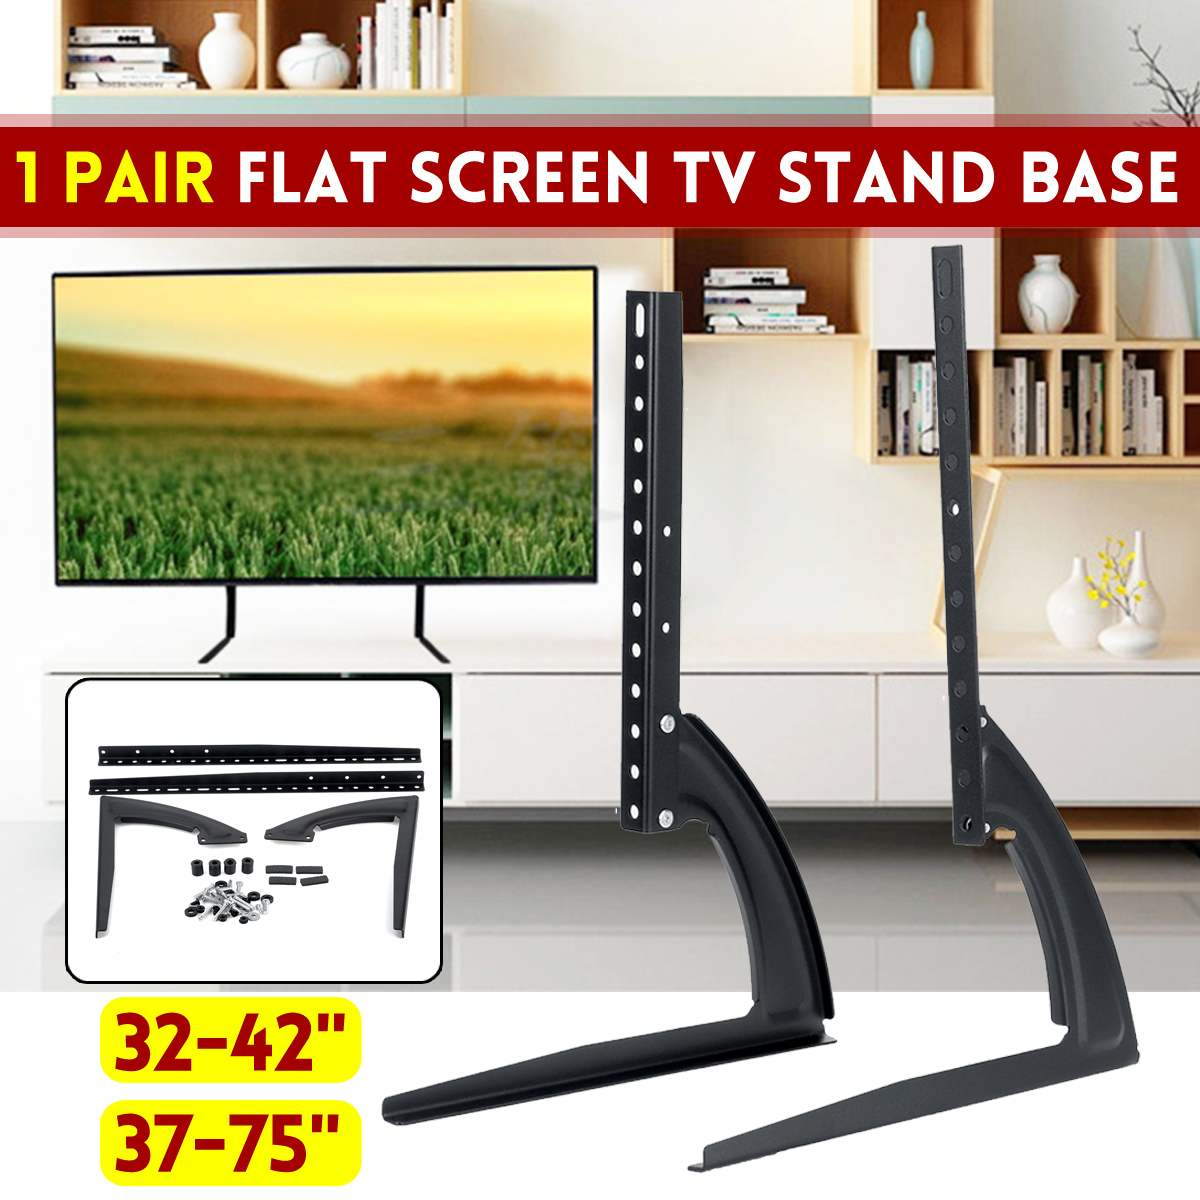 Universal LCD Flat Screen TV Table Top Mount Stand Base Black Fits For 32 Inch To 75 Inch